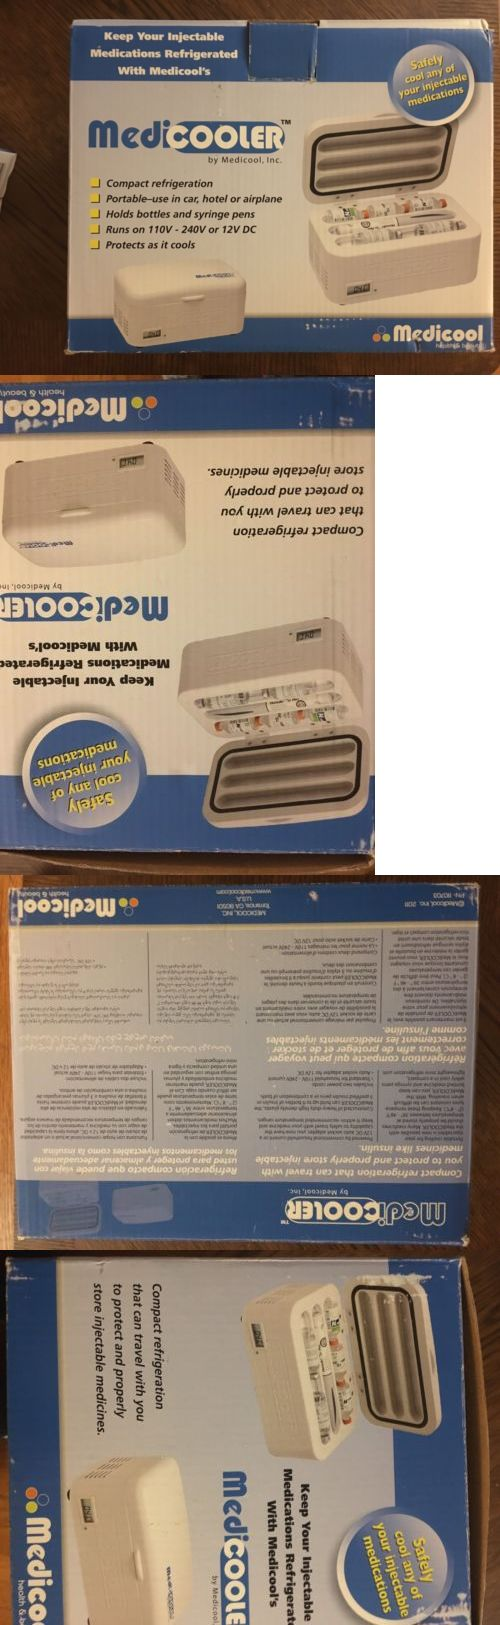 Other Diabetic Aids: Medicooler Micro Insulin Refrigerator Brand New -> BUY IT NOW ONLY: $99.99 on eBay!